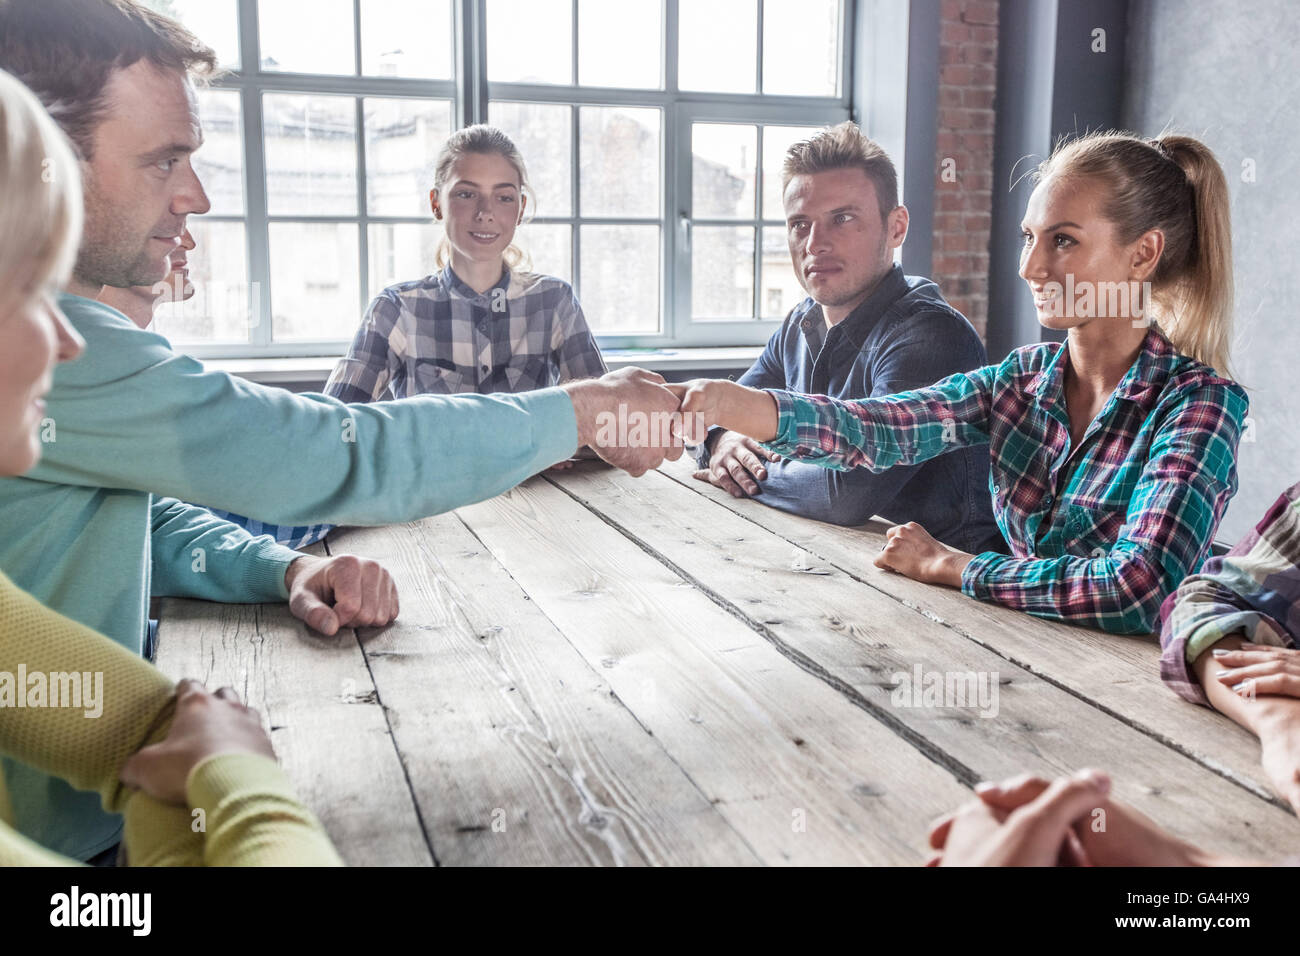 Modern business meeting concept, people on casual clothes sitting around wooden table - Stock Image